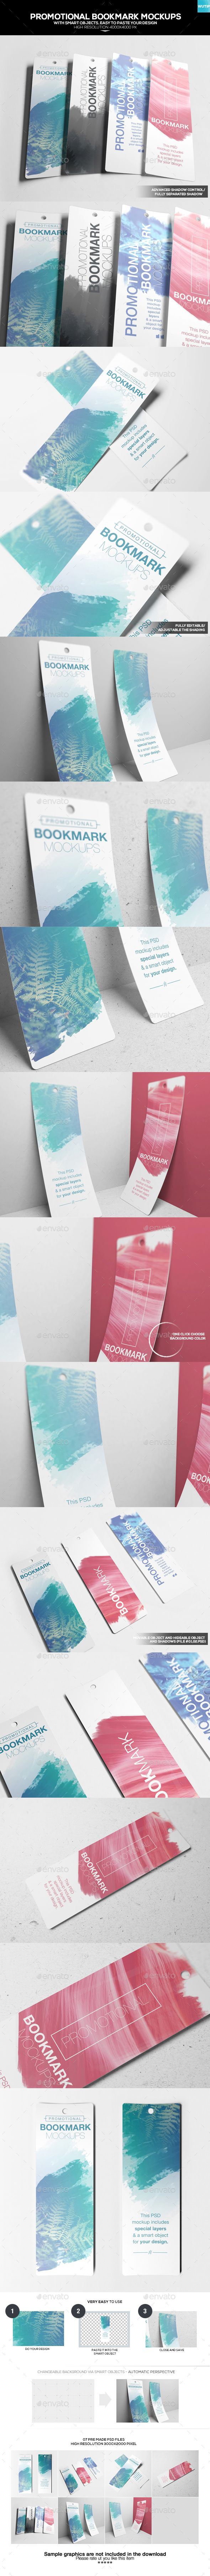 Promotional Bookmark Mockups